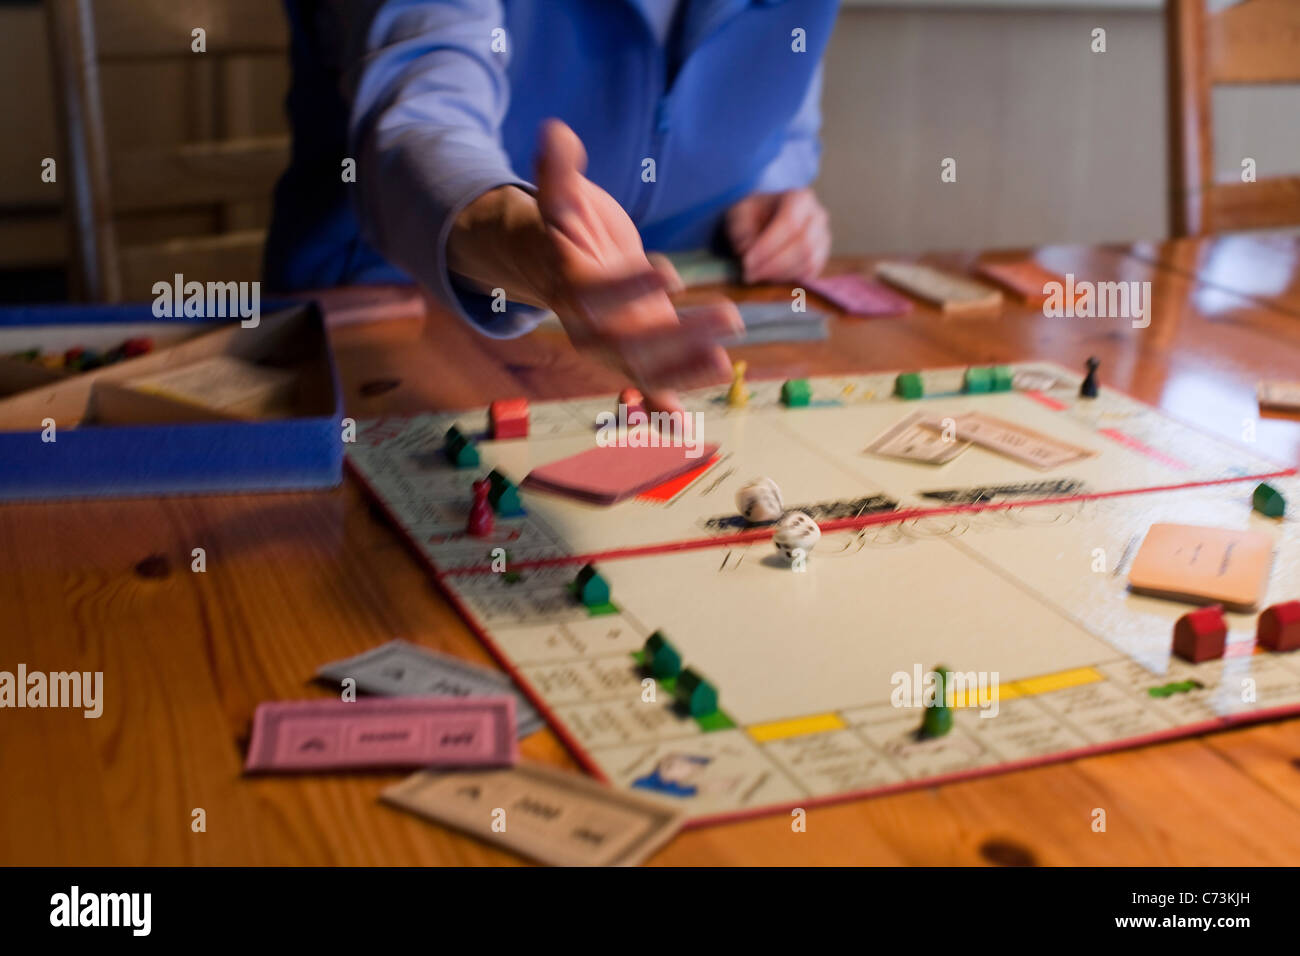 Woman shaking the dice, Monopoly board game, German version, detail, blurred, play money, Germany - Stock Image